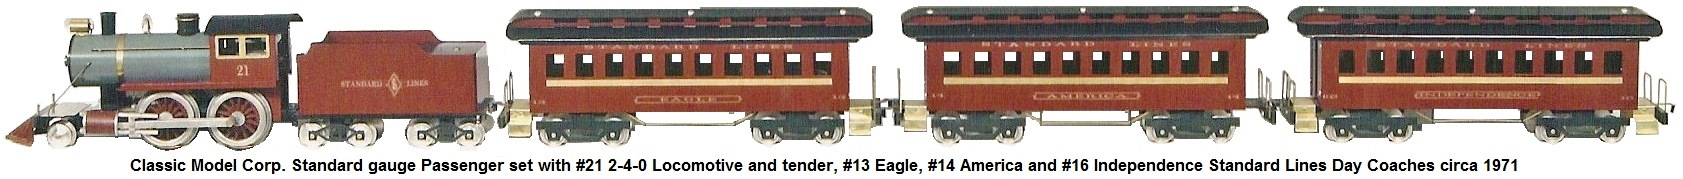 Classic Model Corp. Standard gauge #21 2-4-0 locomotive and tender with #13 Eagle, #14 America and #16 Independence Standard Lines Day coaches circa 1971